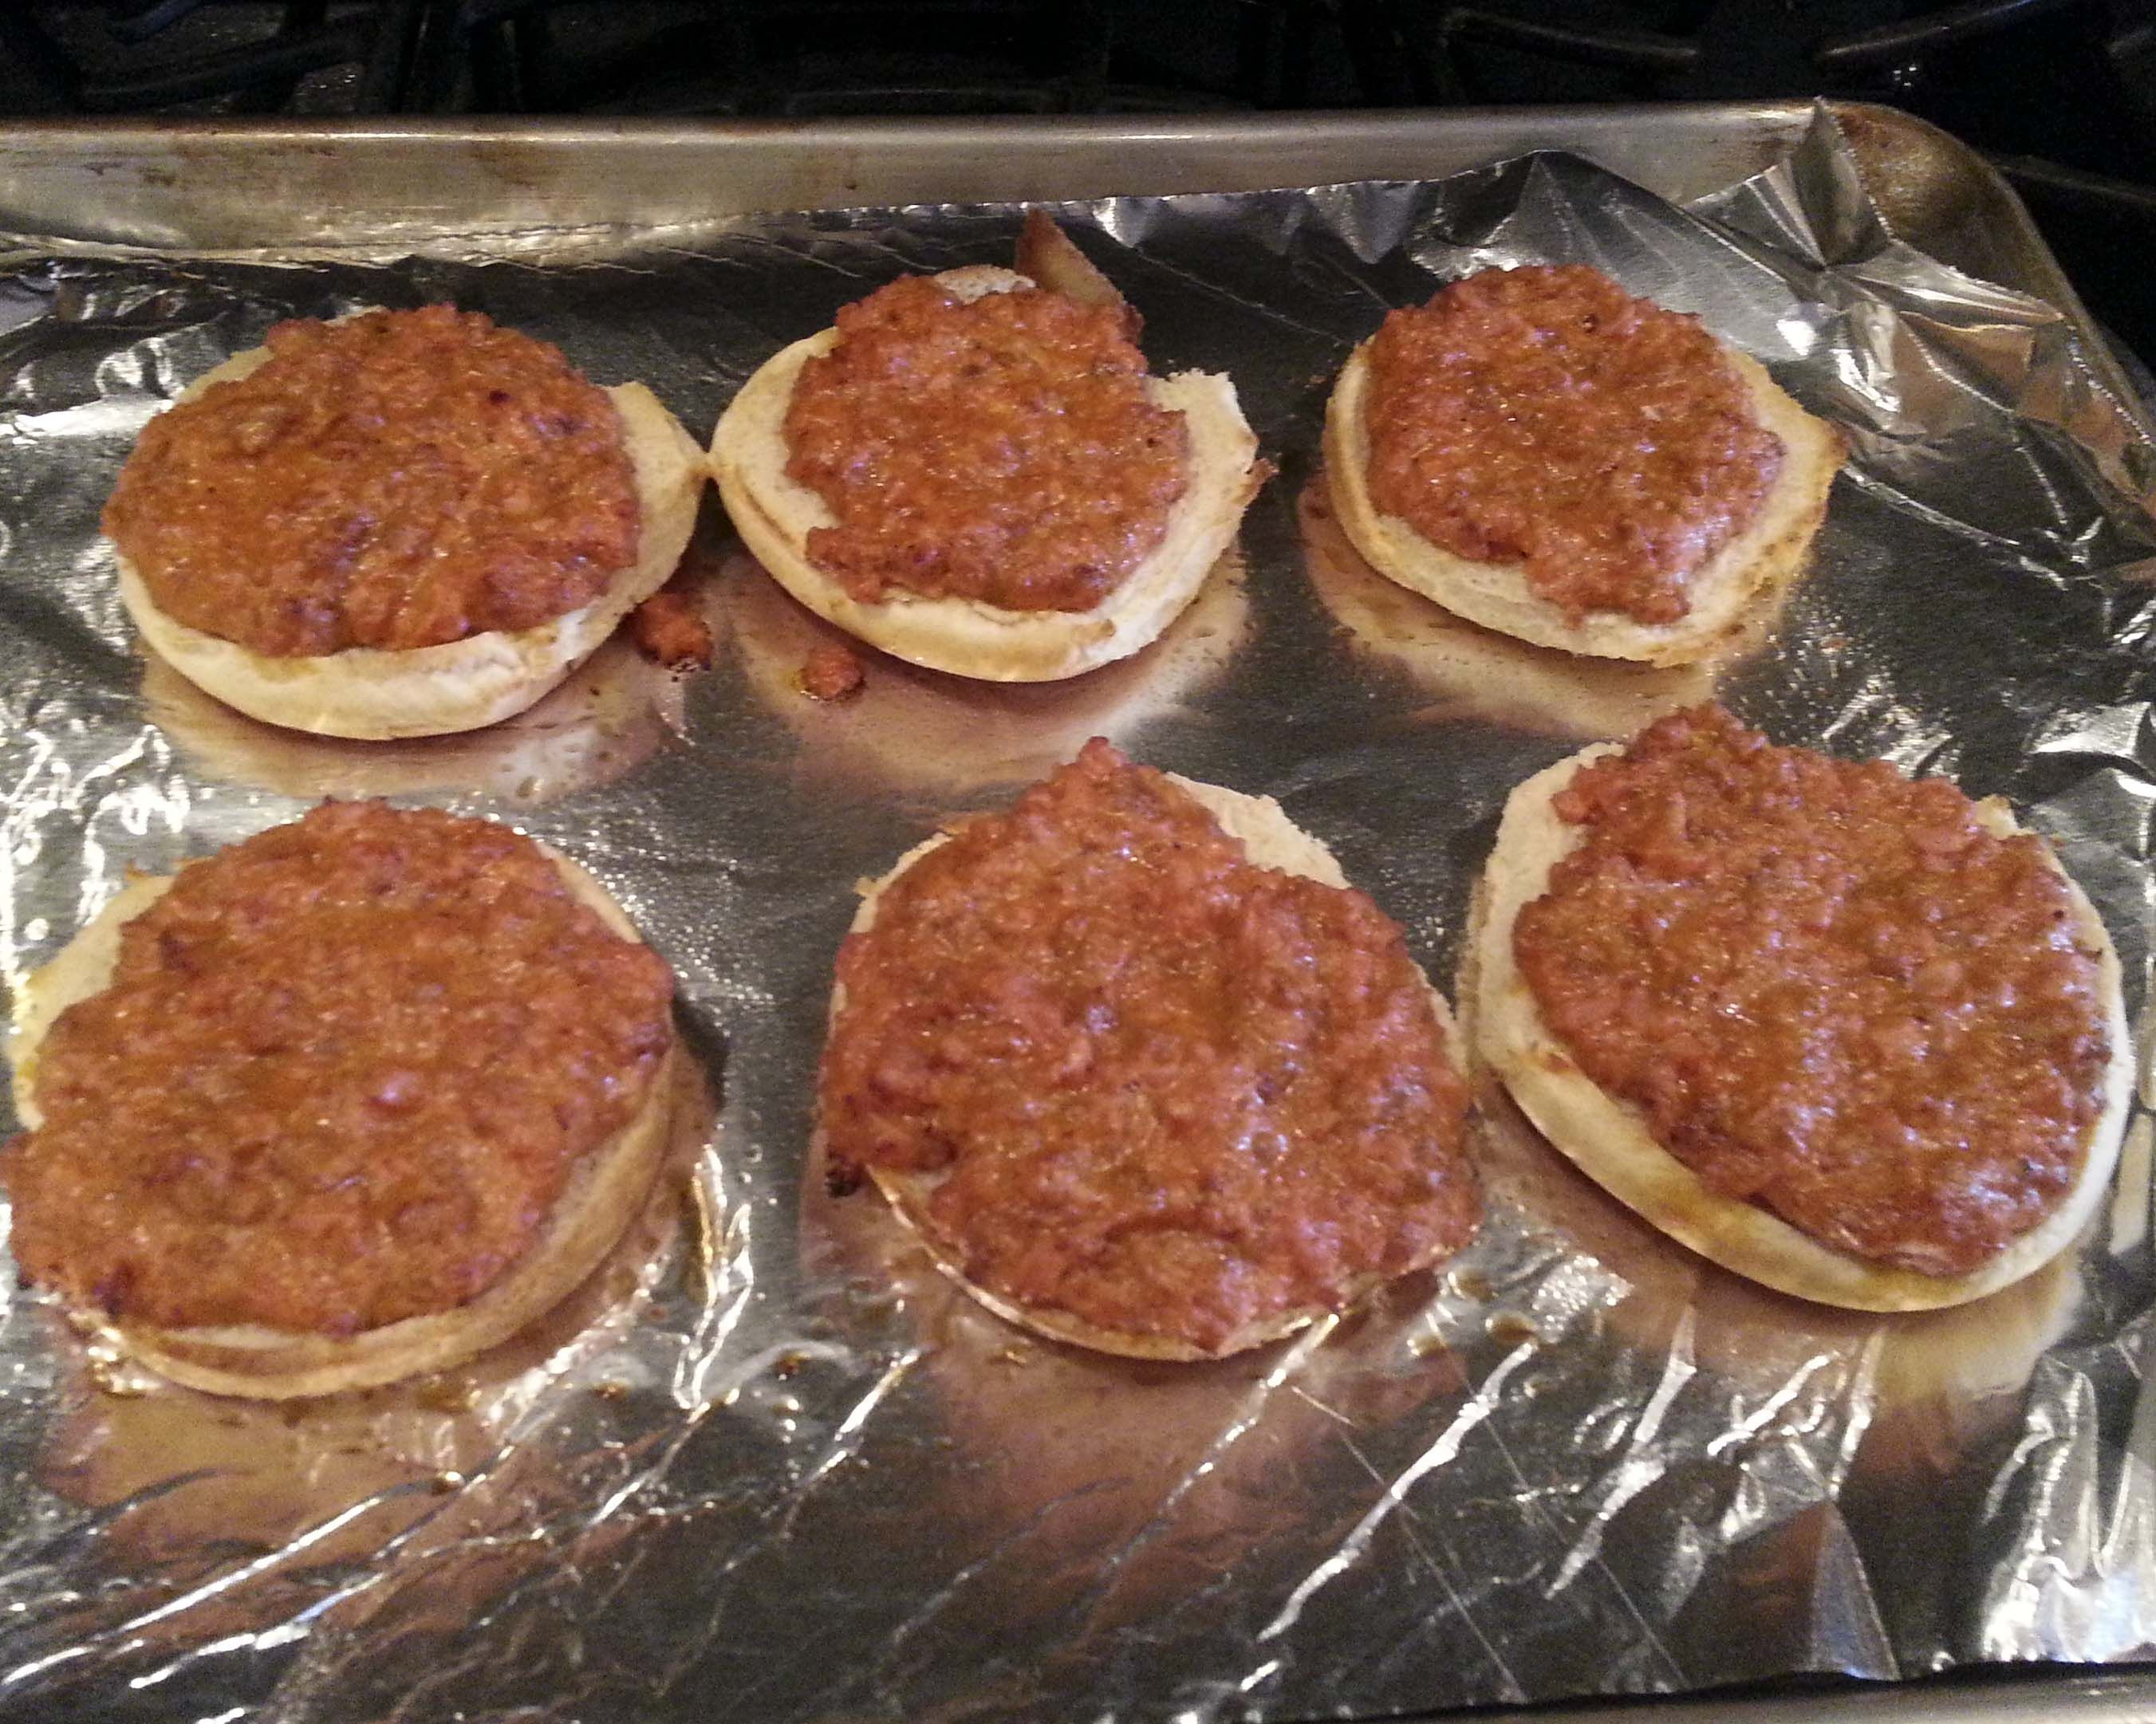 Punxsutawney High School Pizza Burgers